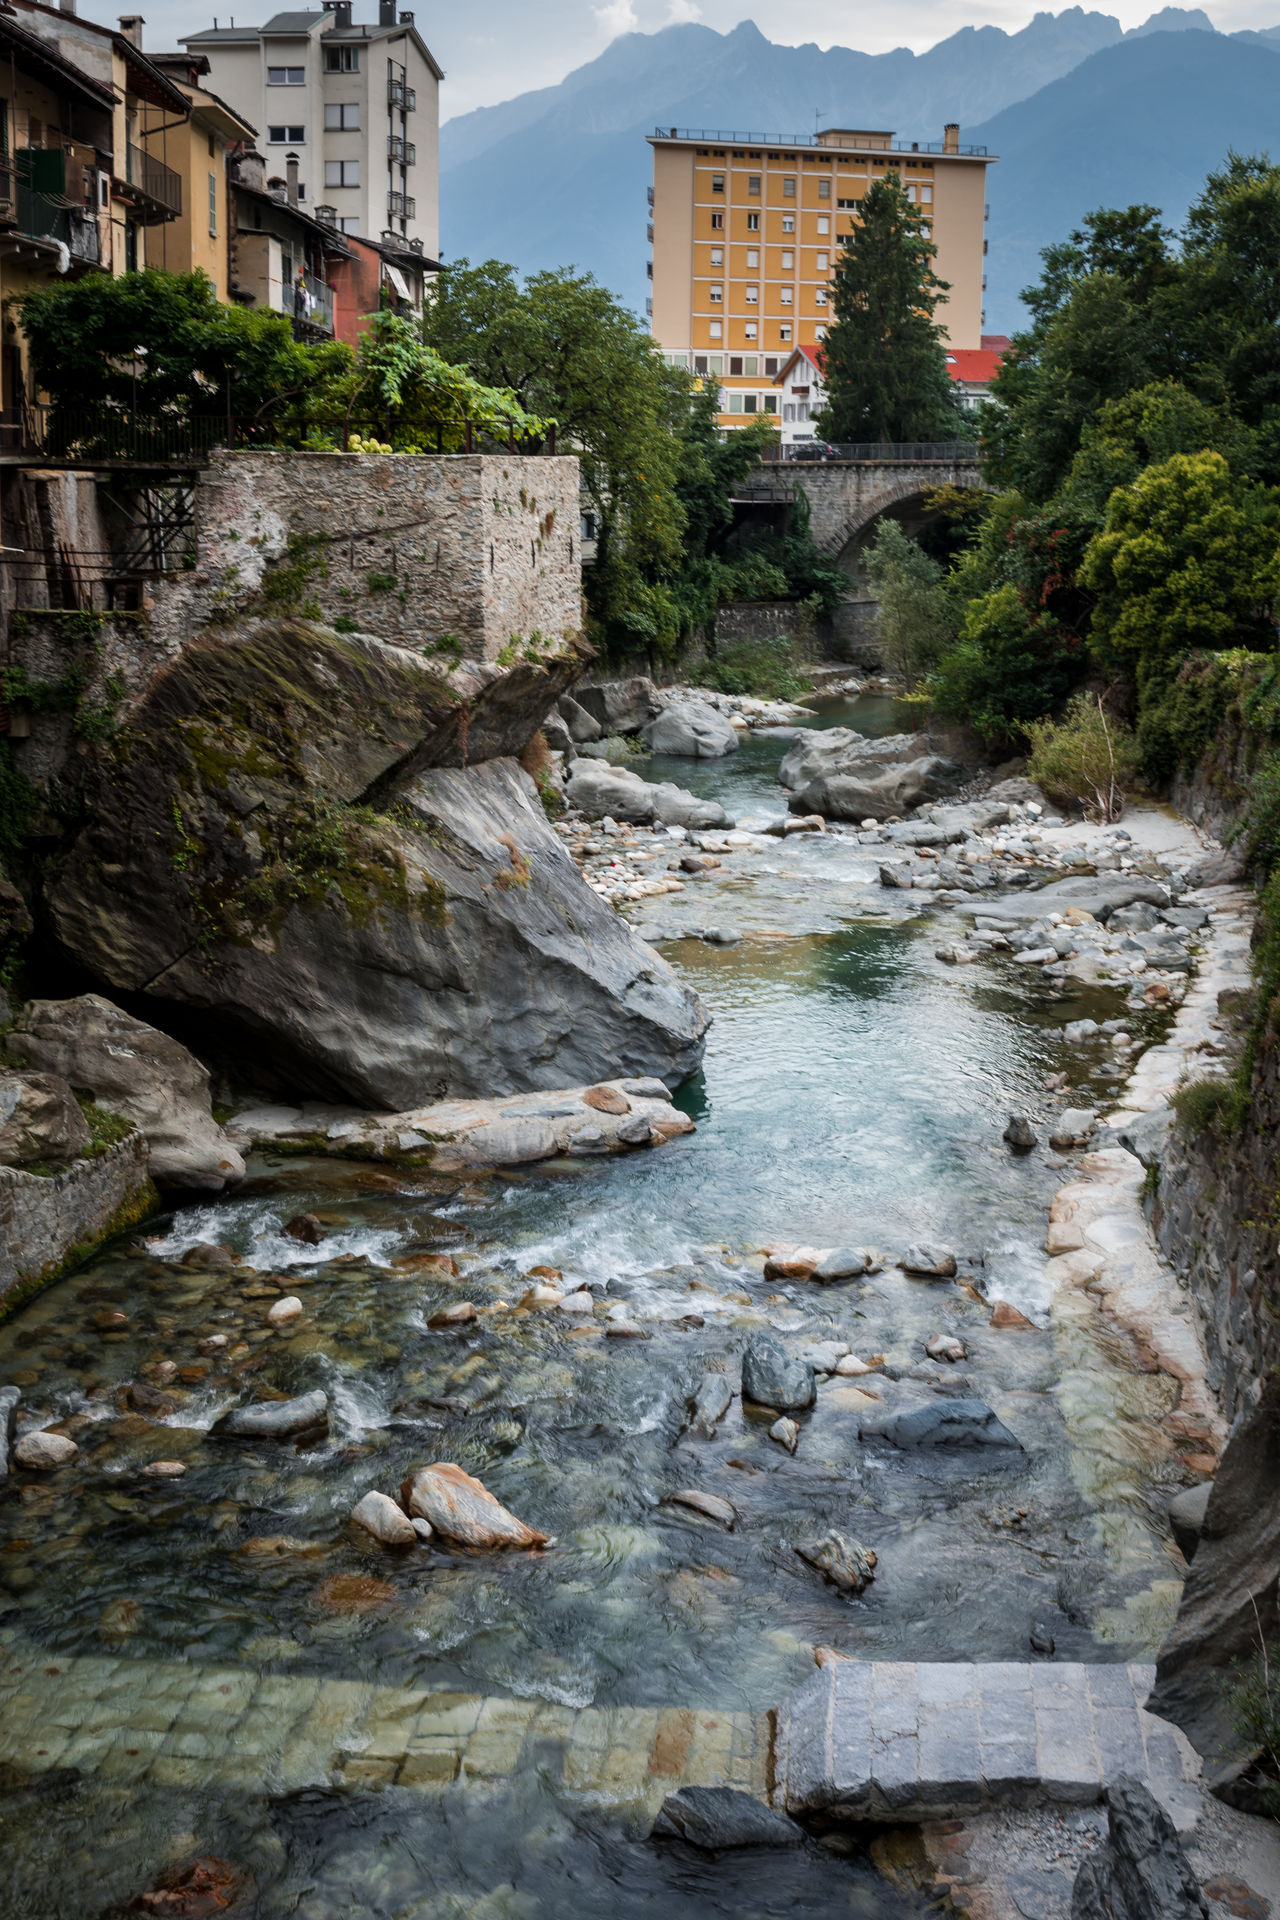 Building Exterior Built Structure Chiavenna Flow  Getty Images Italy My Year My View Nature Old Buildings Old Town Old Village River Rock - Object Rock Formation Rocks Rocks And Water Village